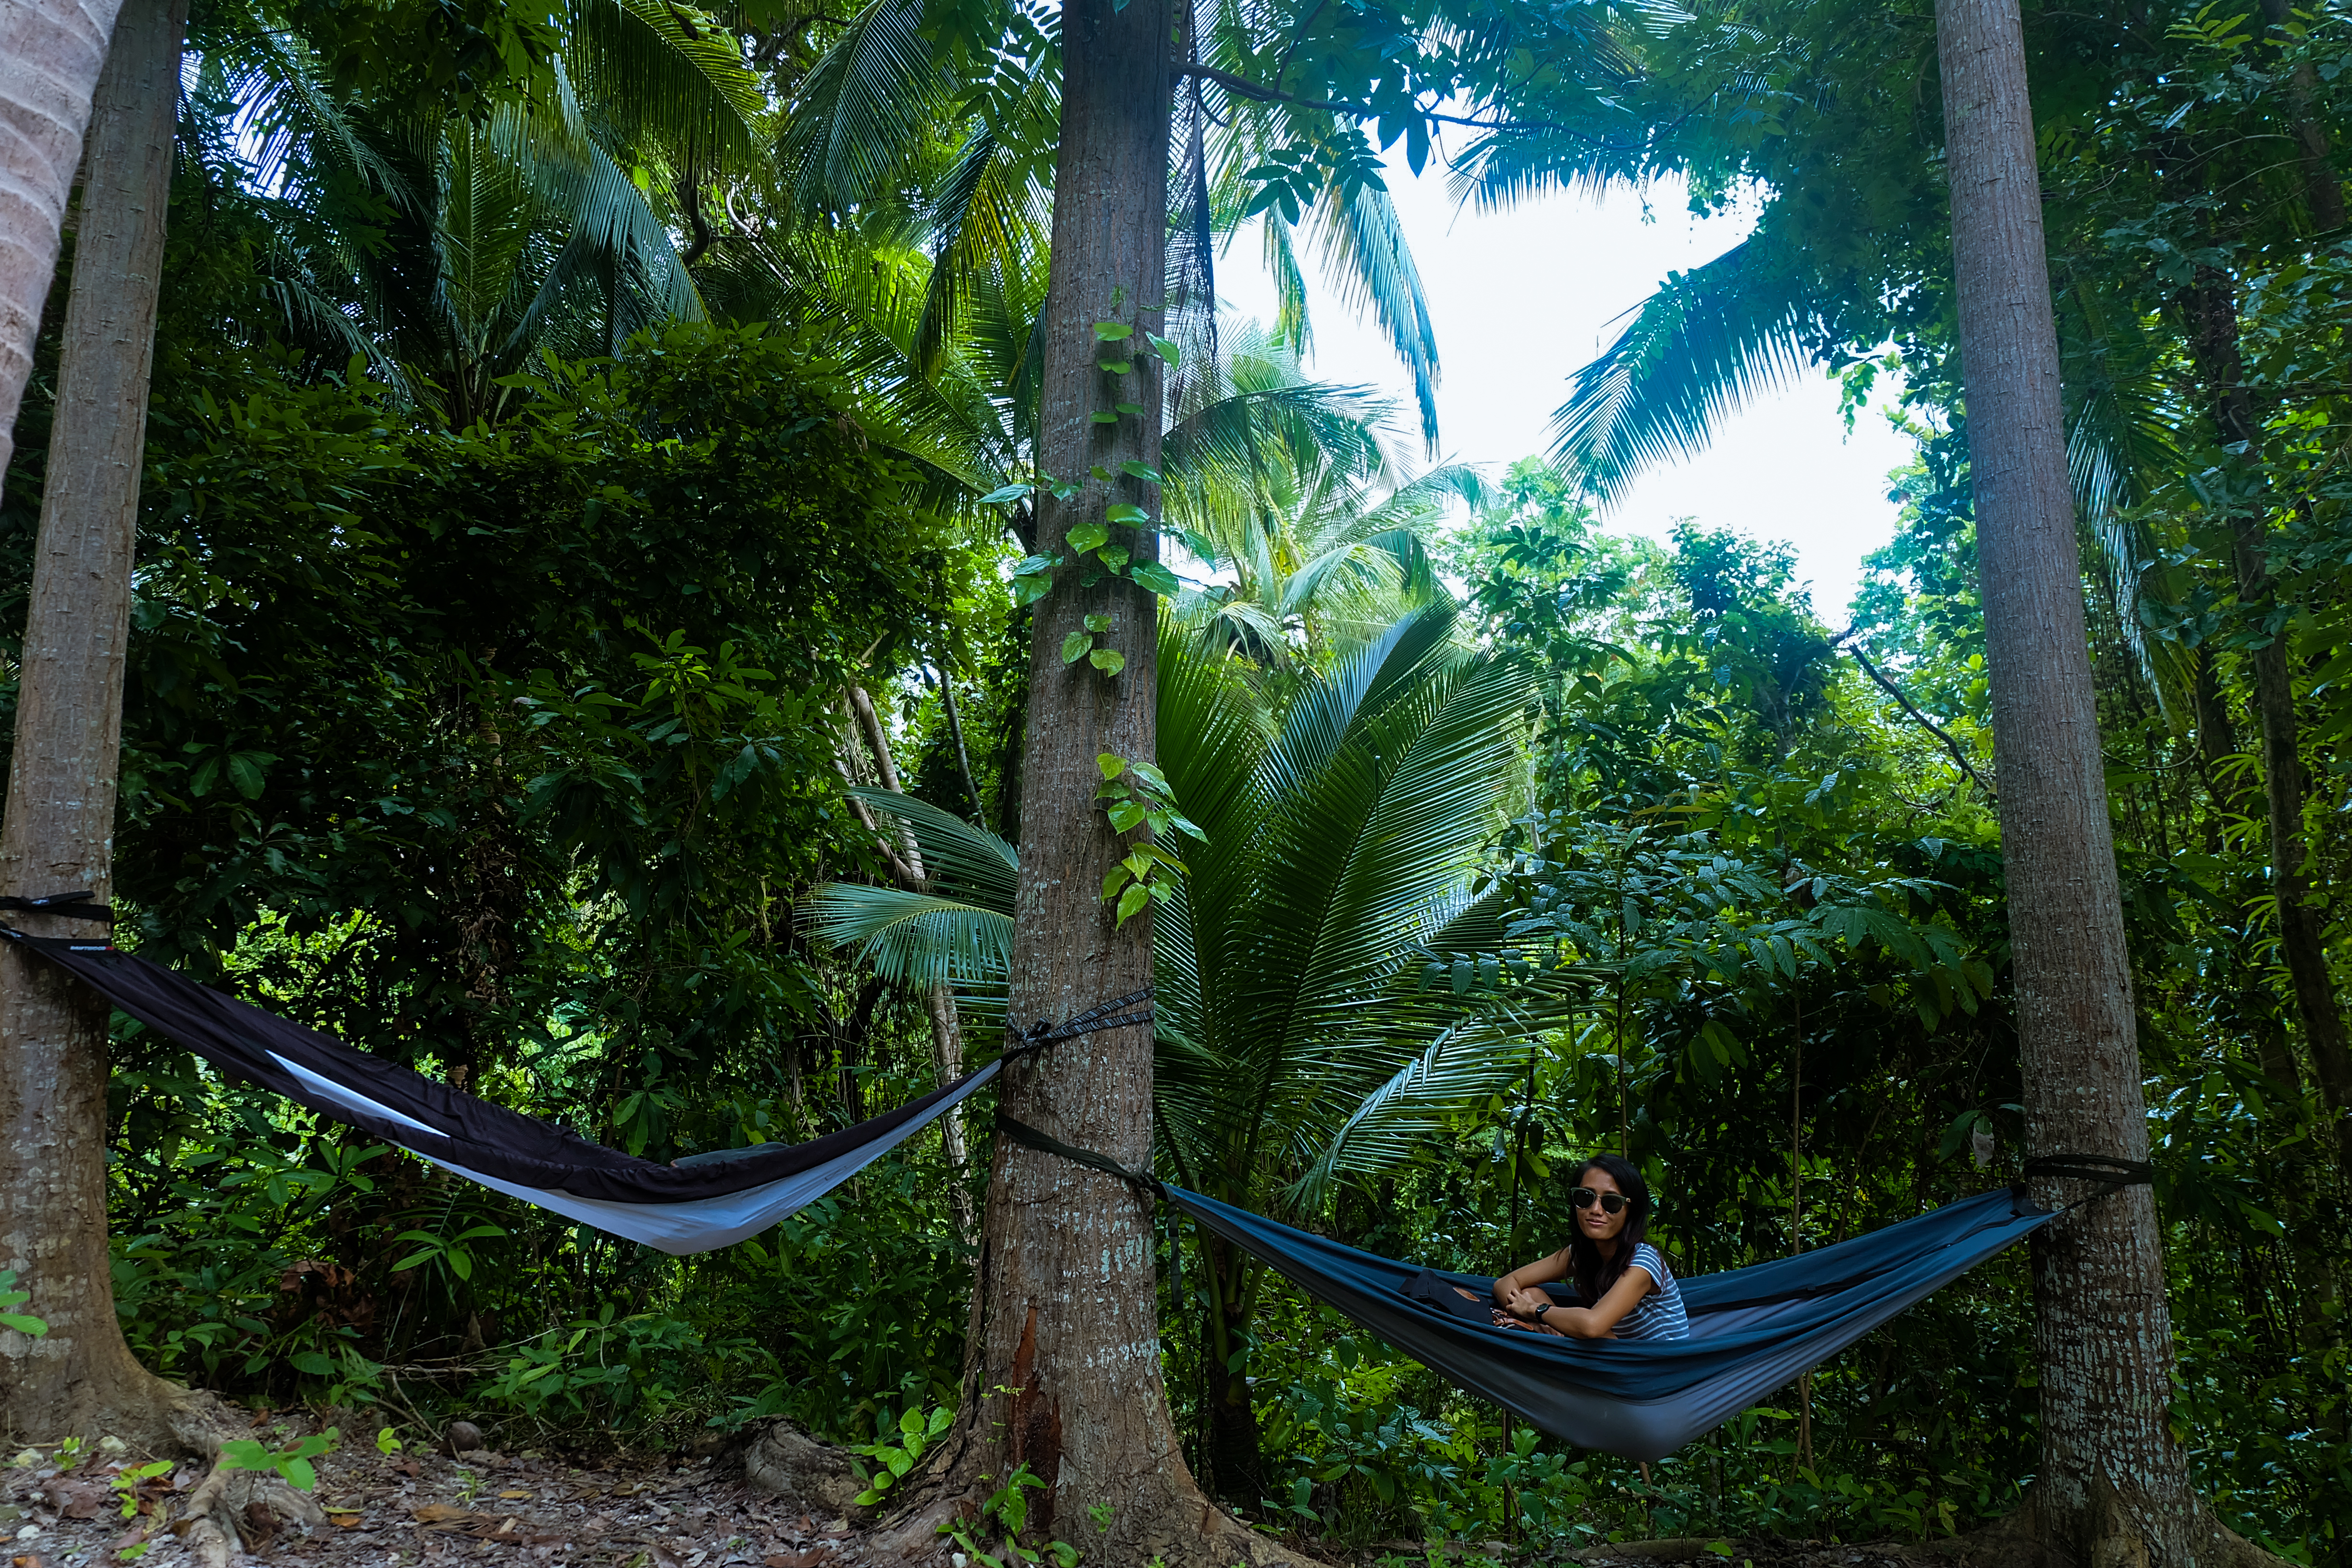 Hammocks And Happiness At Bacalla Woods Sojourns And Stories